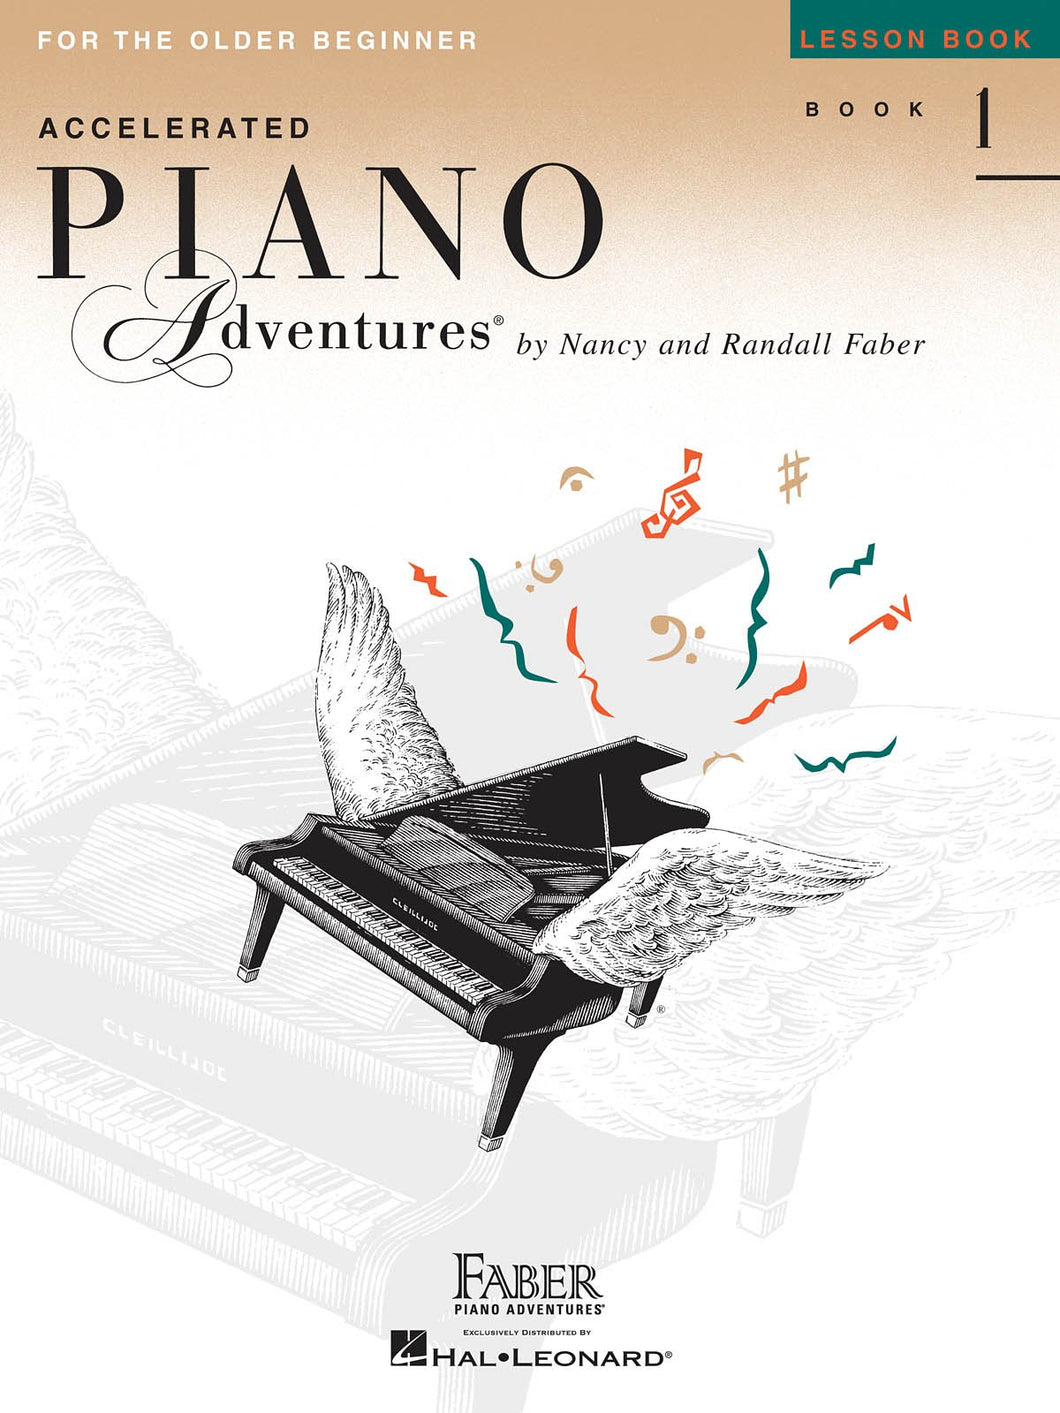 Faber Accelerated Piano Adventures Book 1 Lesson